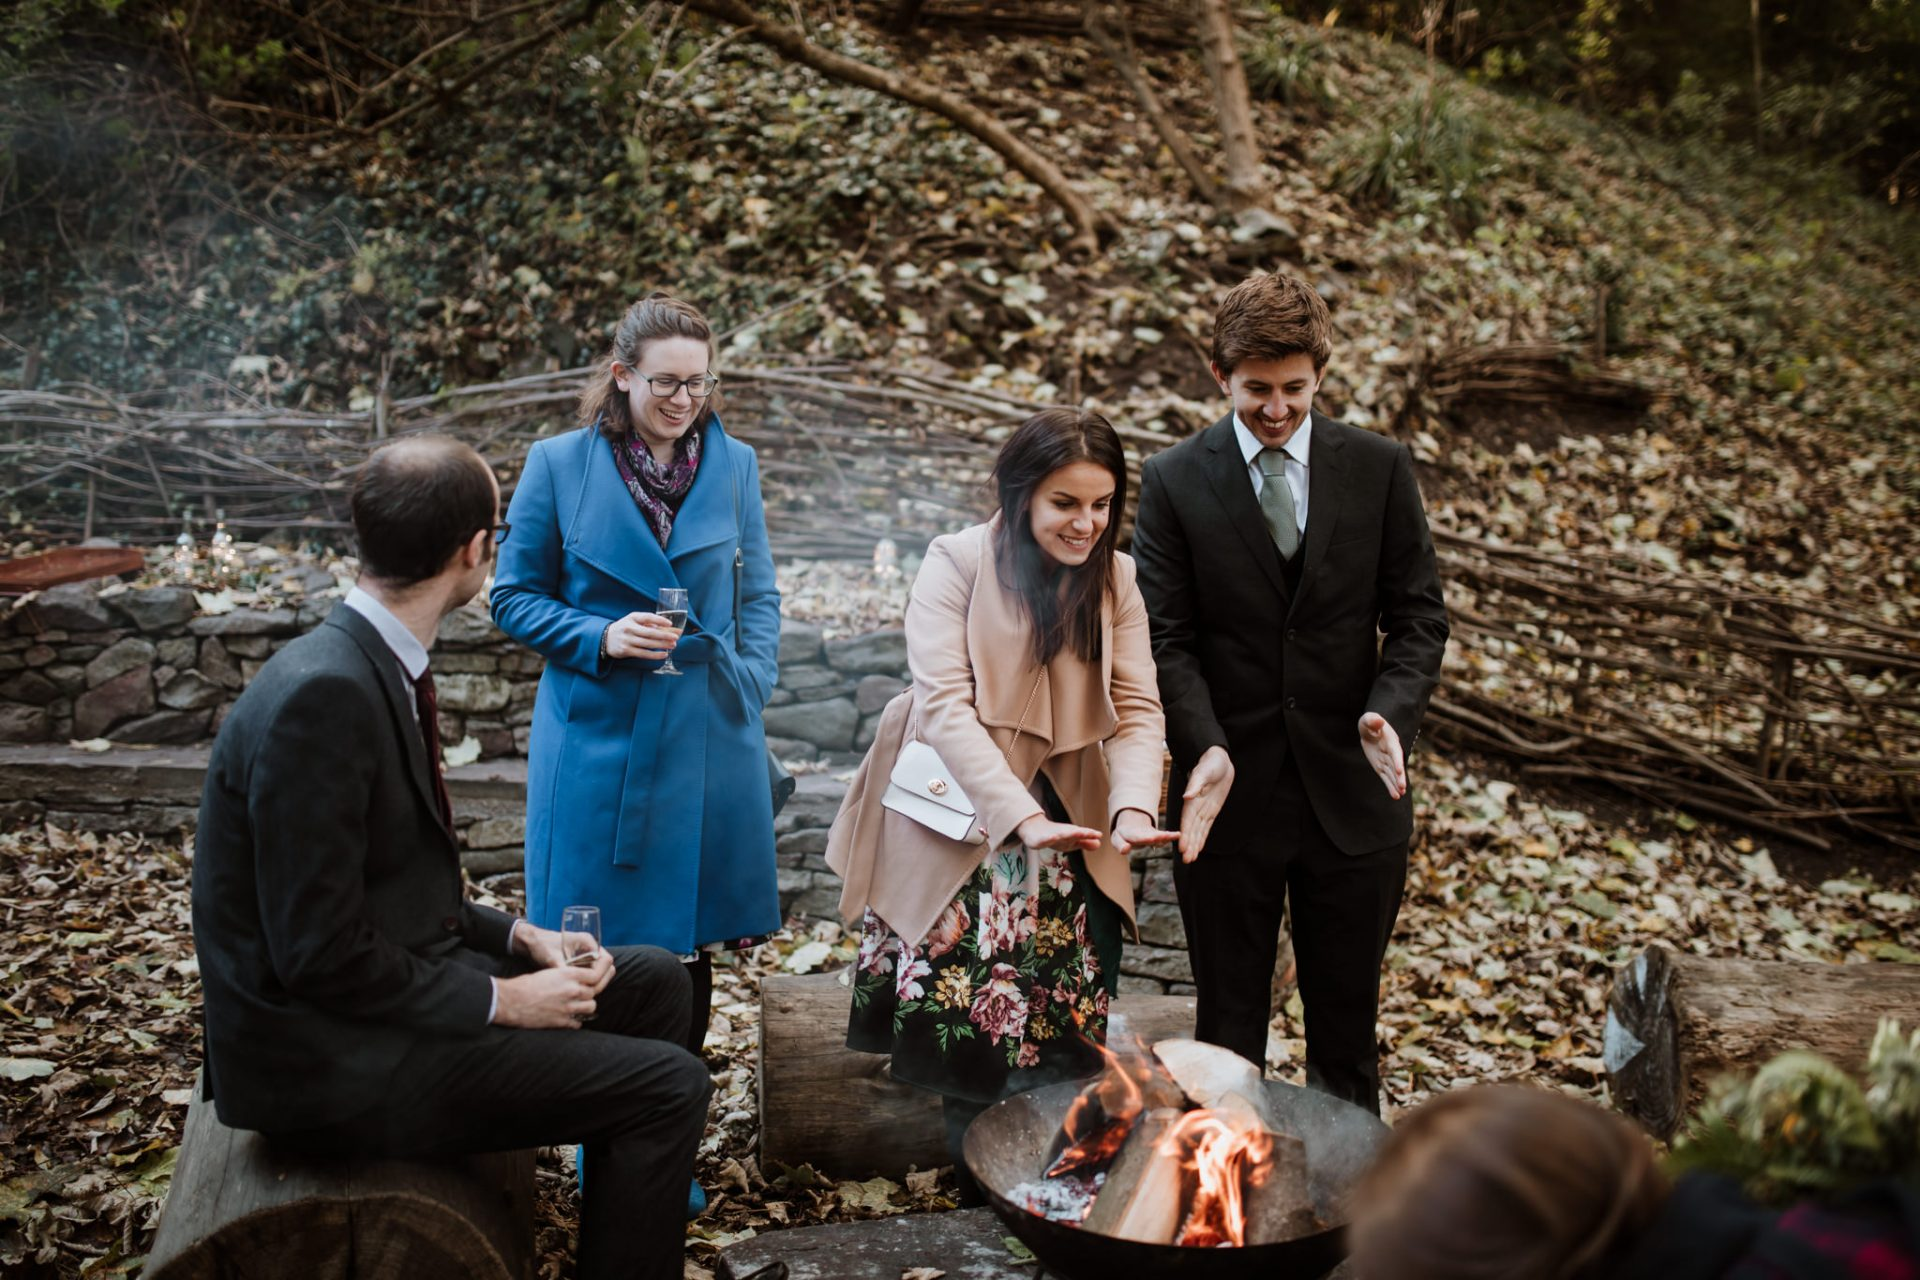 guests warming hands around a fire pit